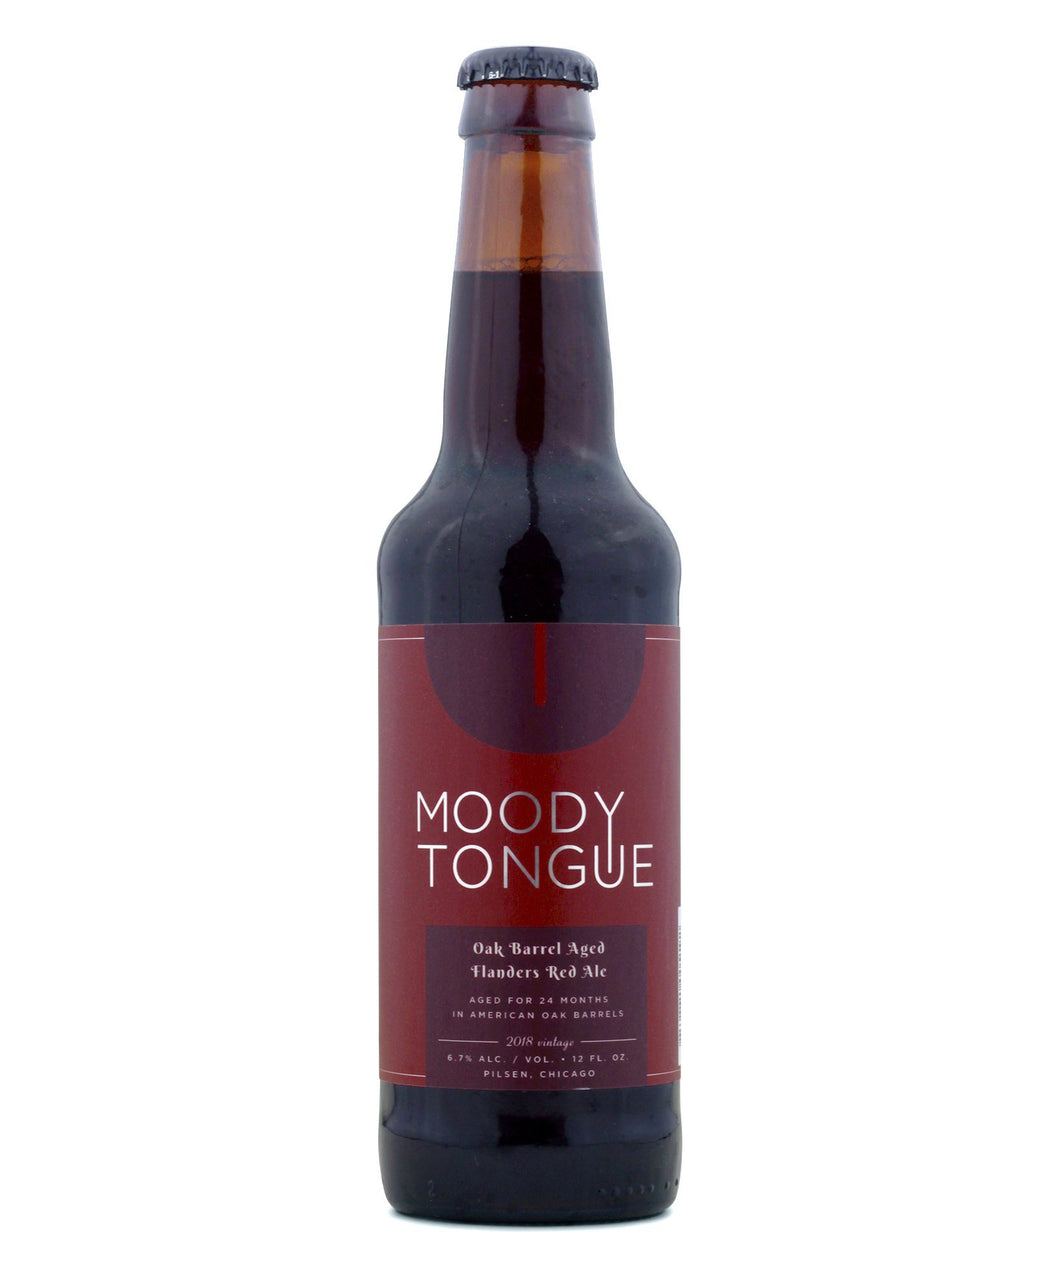 Oak Barrel-Aged Flanders Red Ale - Moody Tongue Brewing Company Delivered By TapRm